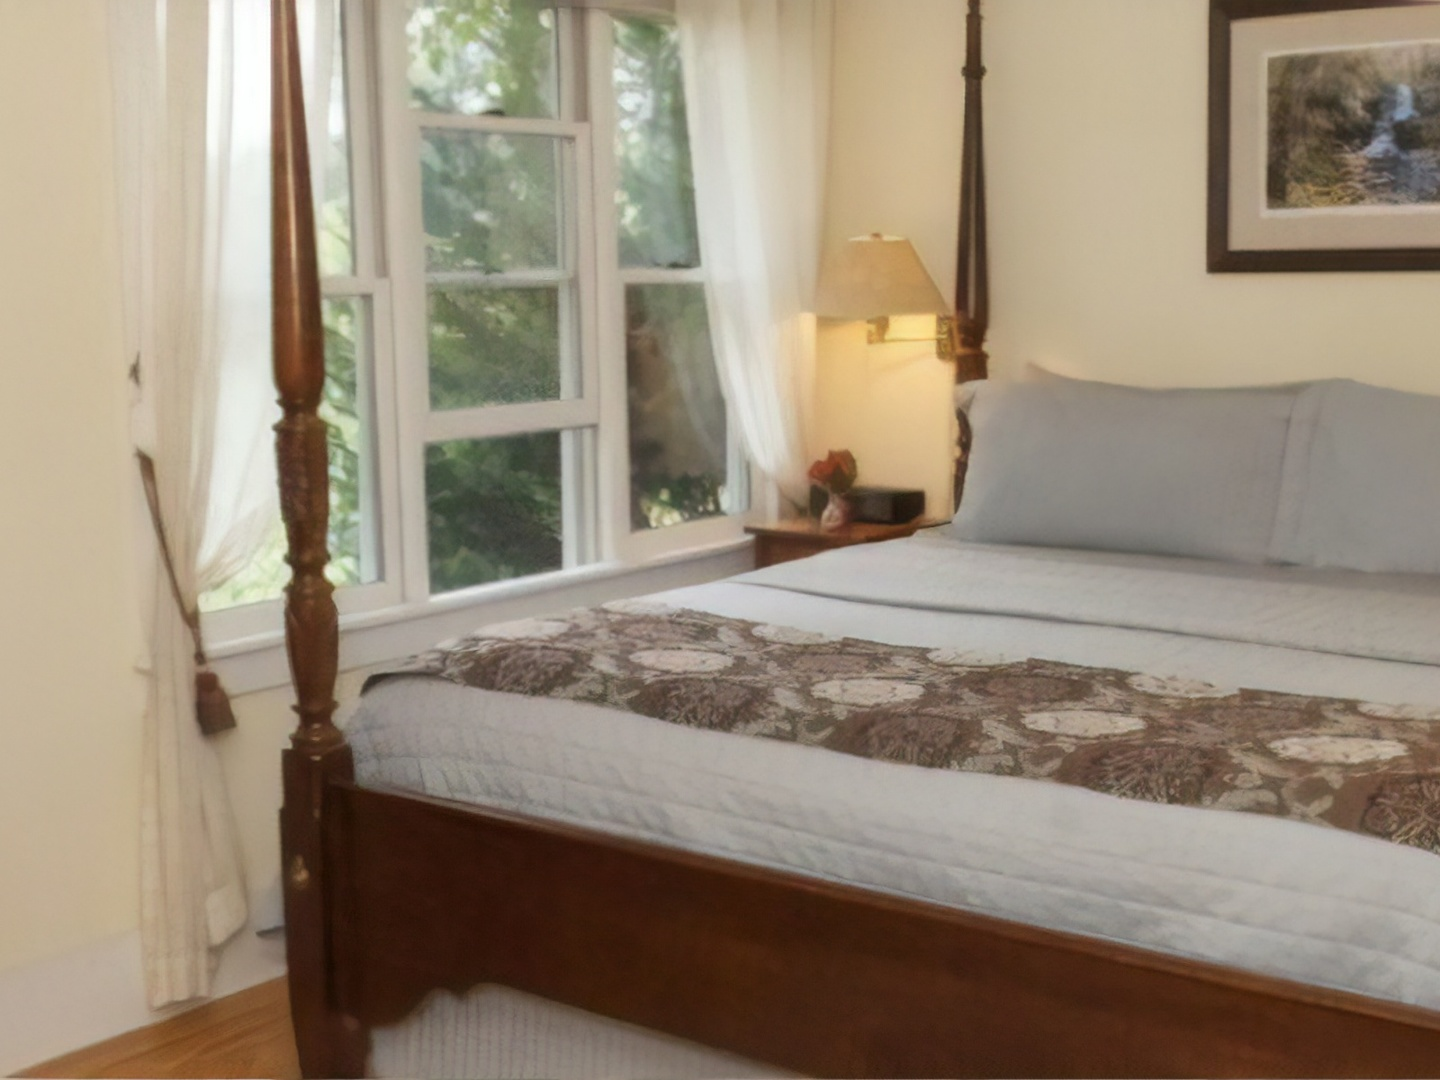 A bedroom with a bed and a window at The Orchard Inn.